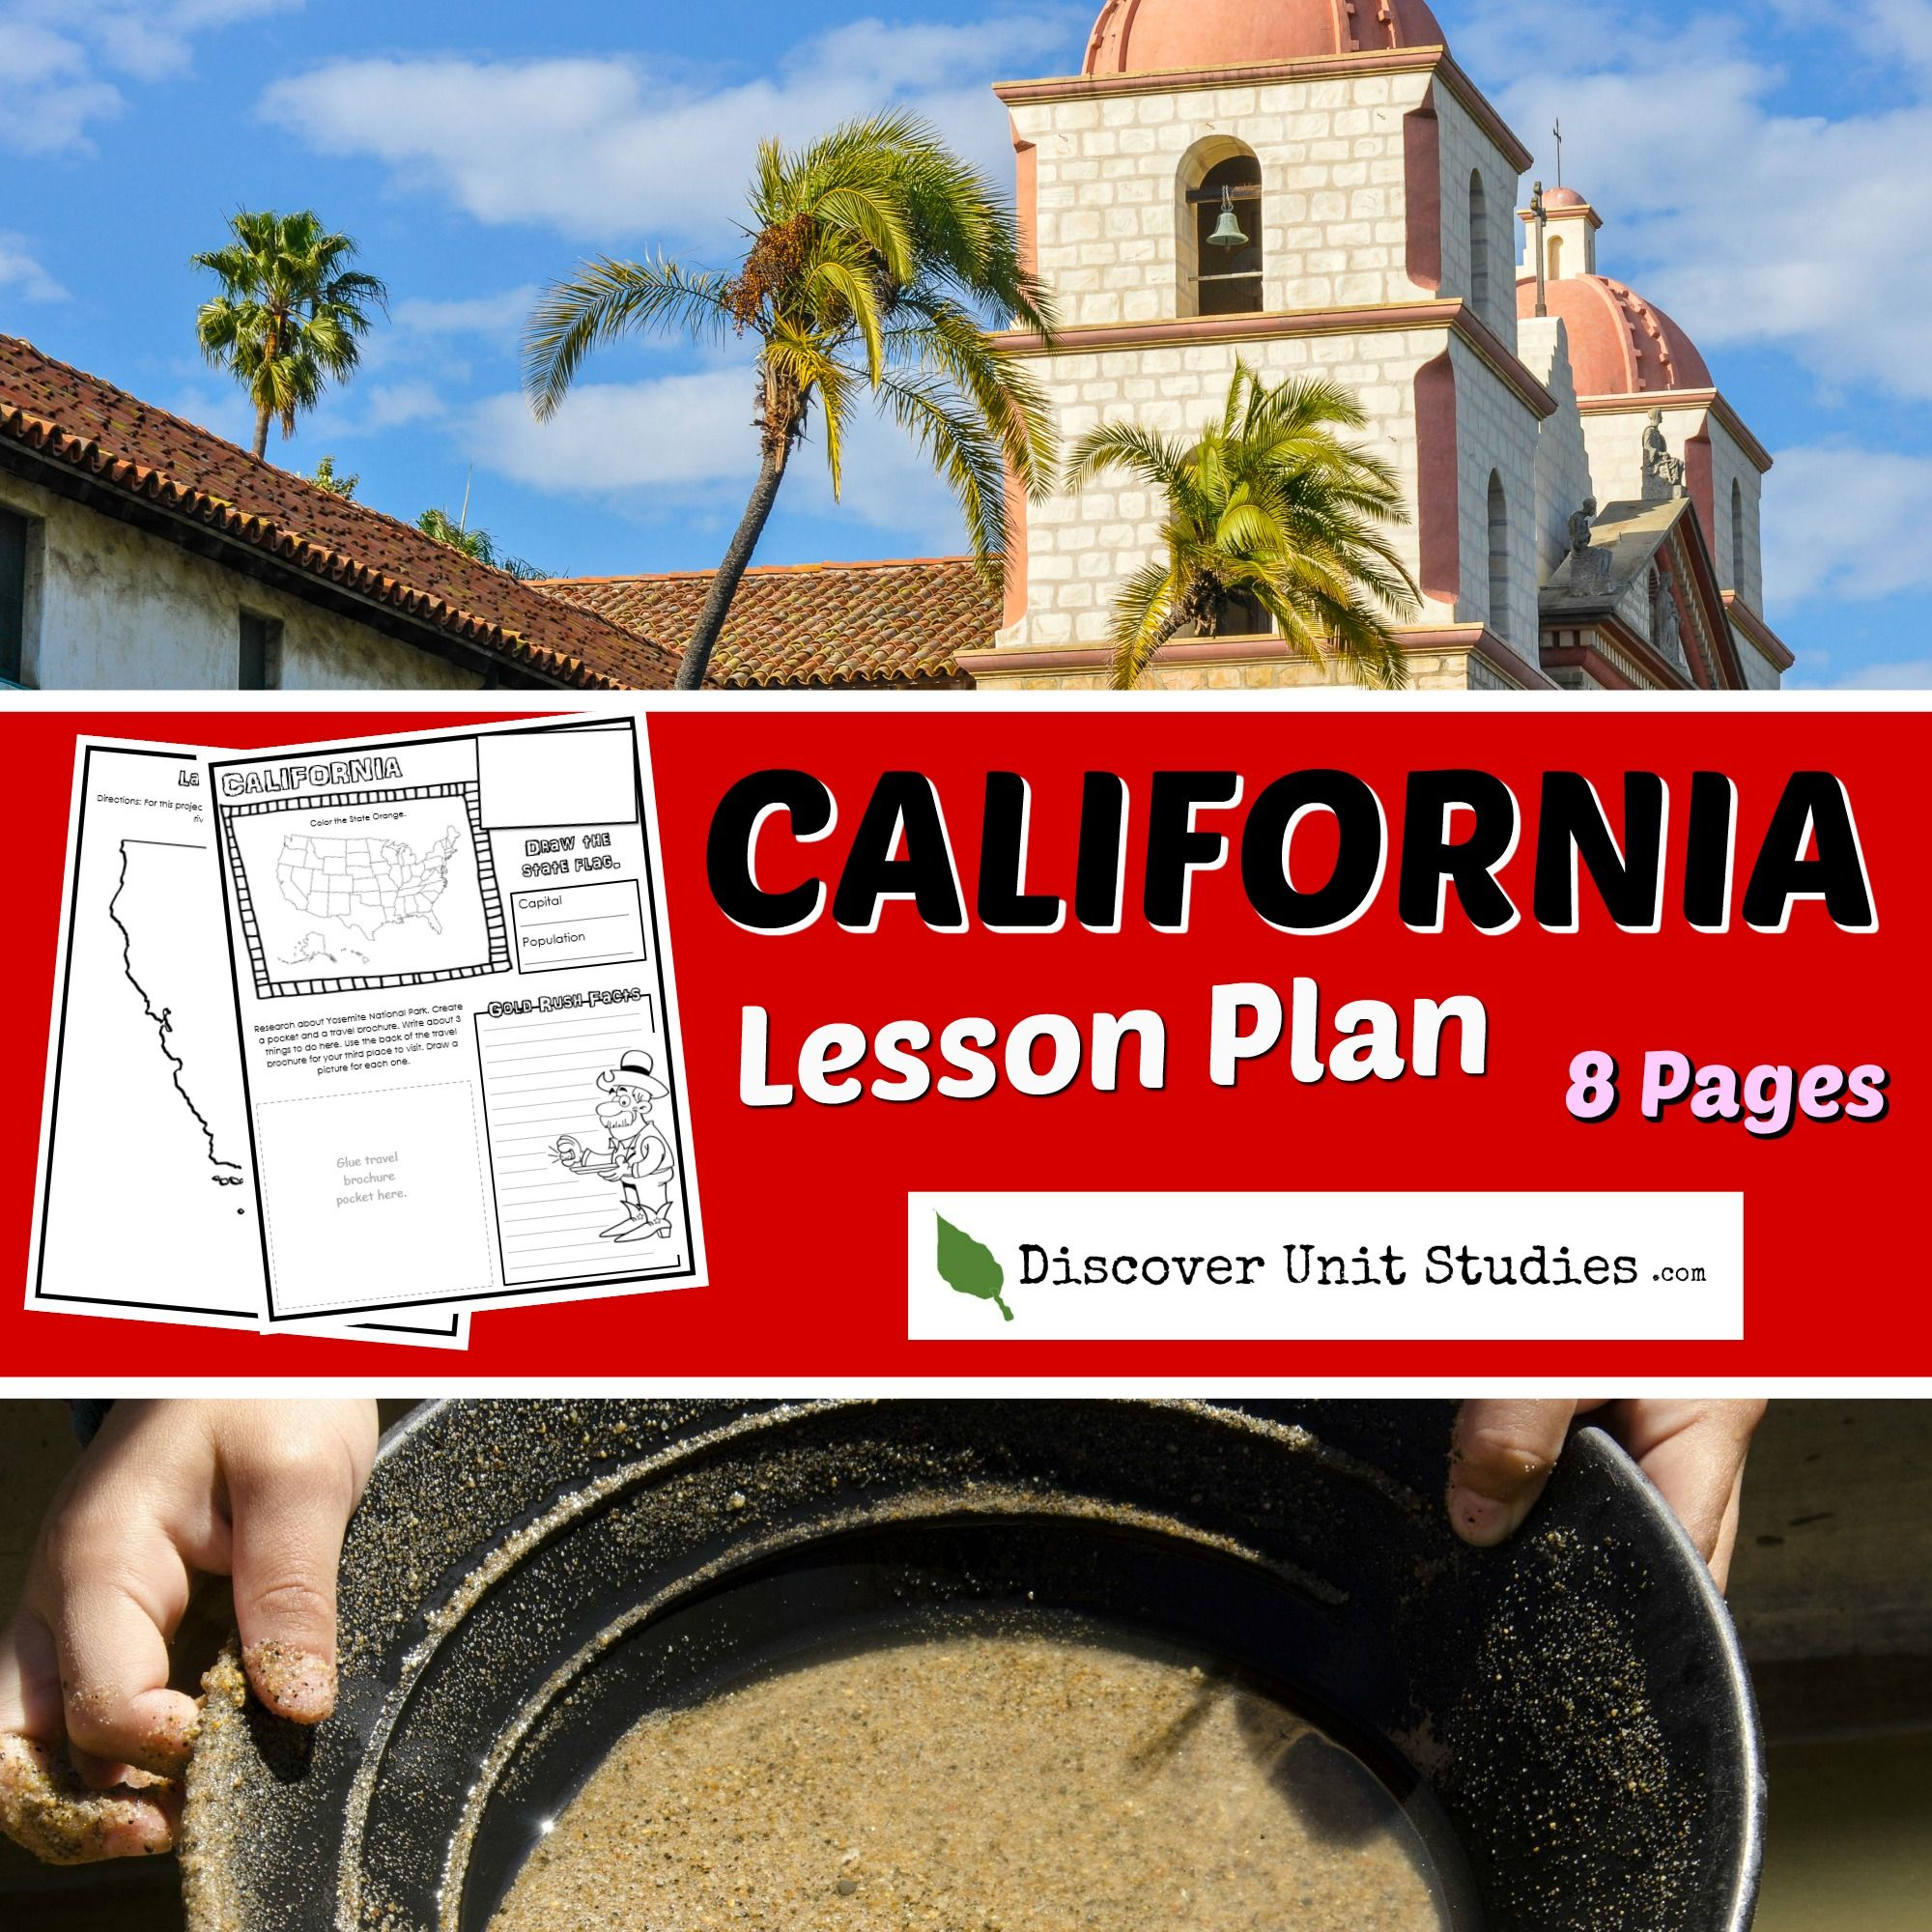 Enjoy Learning About California With This 8 Page Download